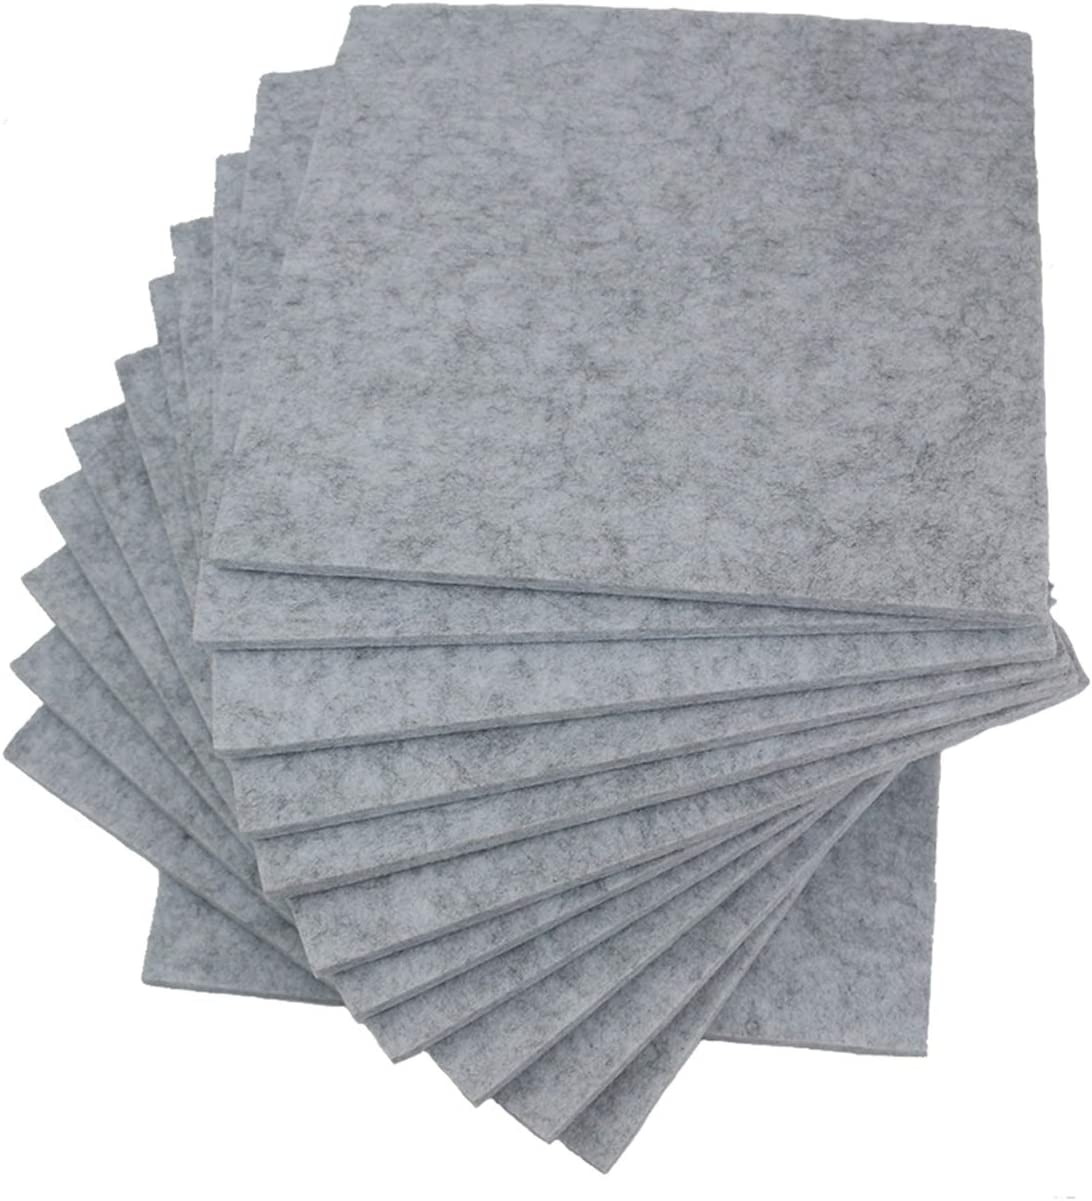 Orgrimmar 12 Pack Acoustic Panels, 12 X 12 X 0.4 Inches Grey Acoustic Sound Proofing Studio Foam Padding Soundproofing Insulation Panel Tiles For Acoustic Treatment& Offices (Gray)